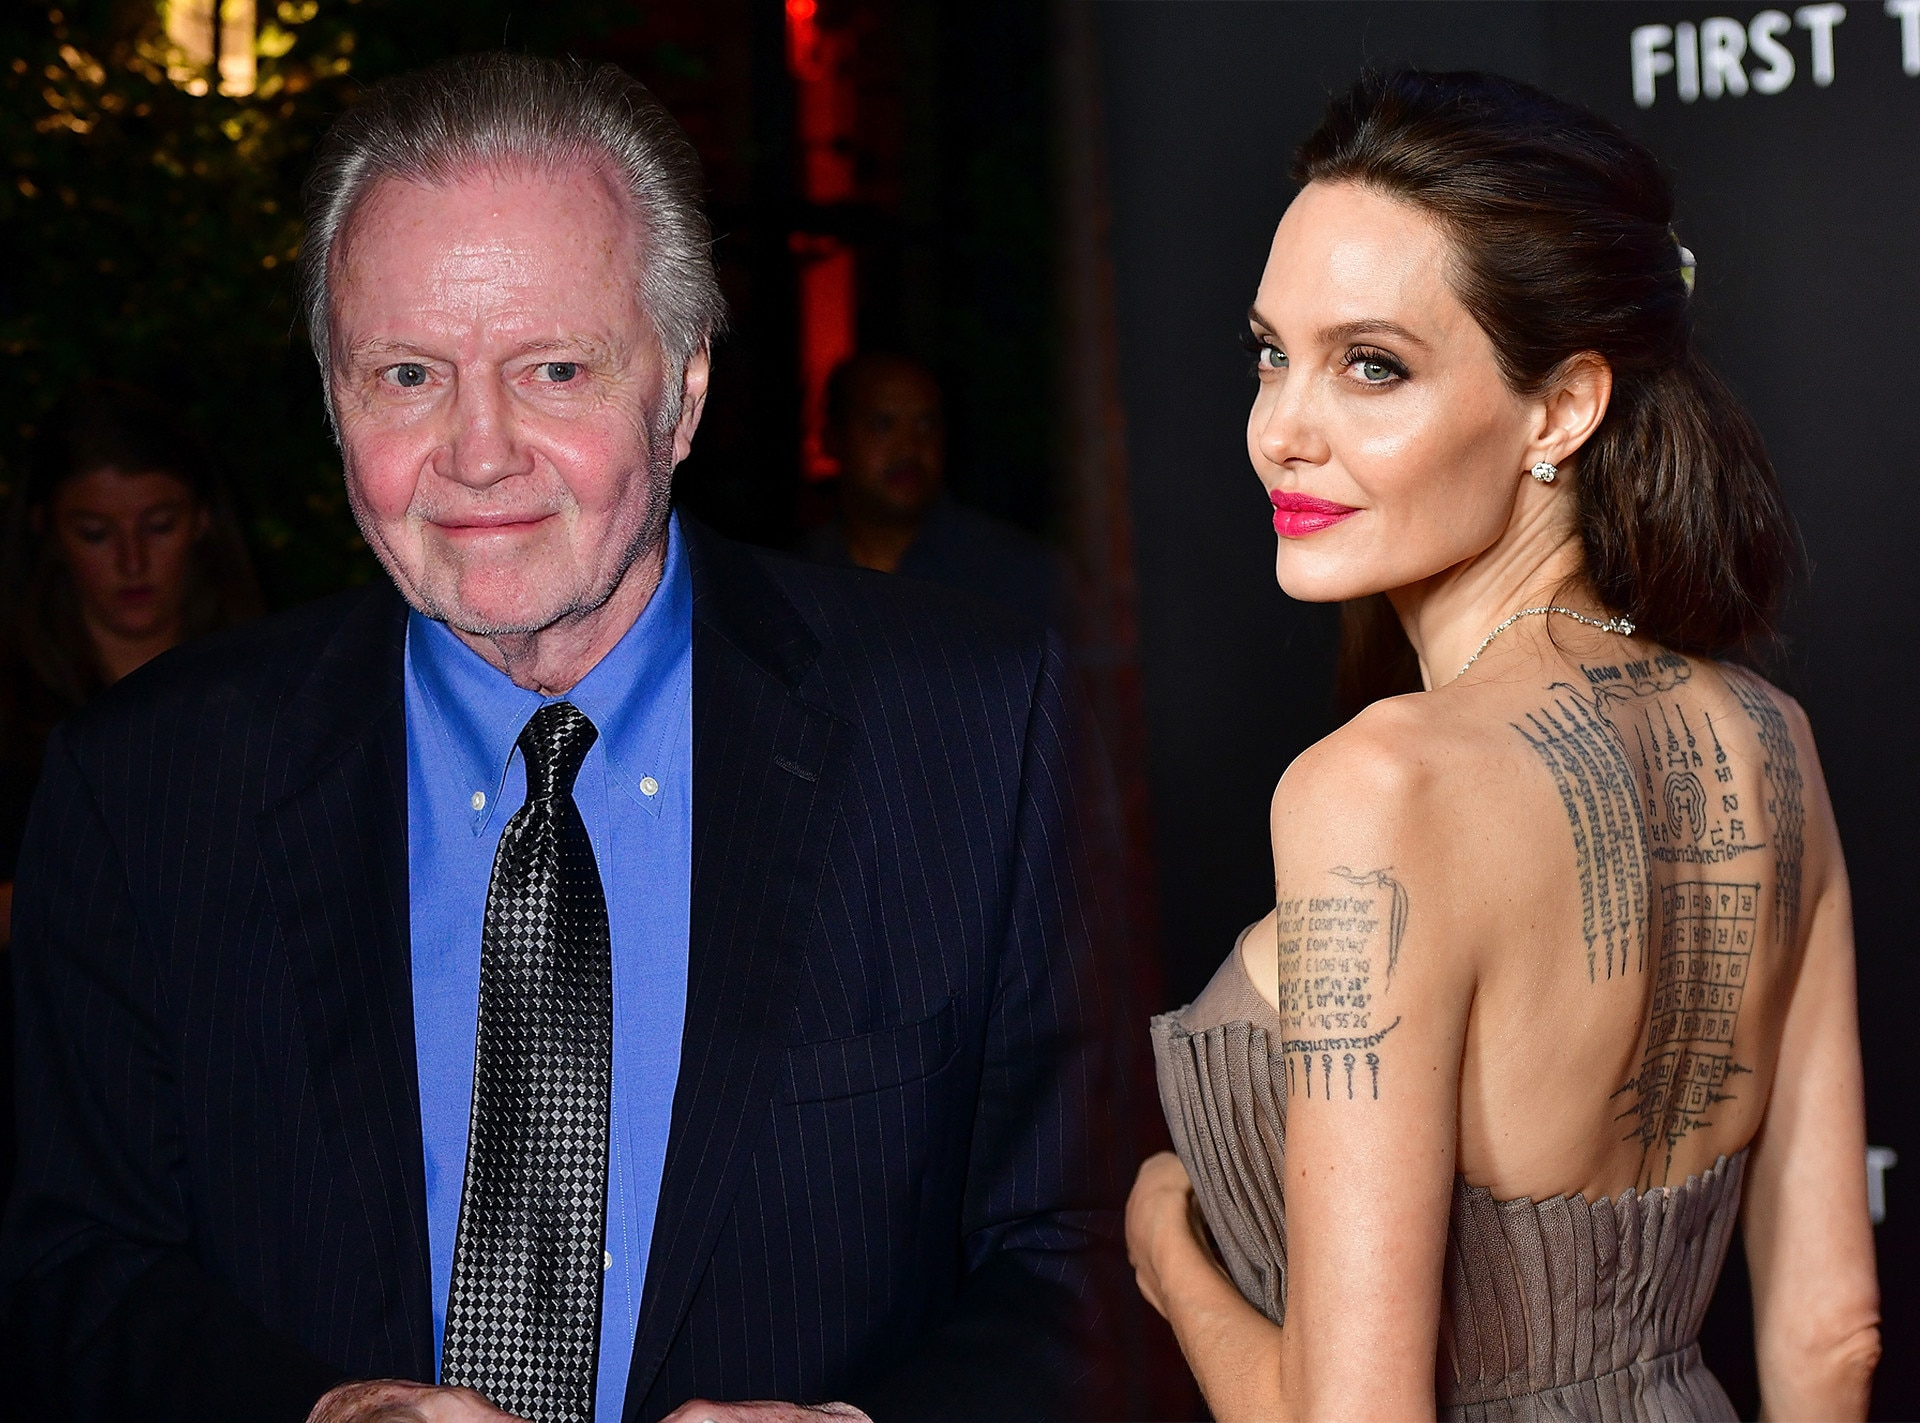 Do angelina jolie have sex with two men at the same time in her porn videos